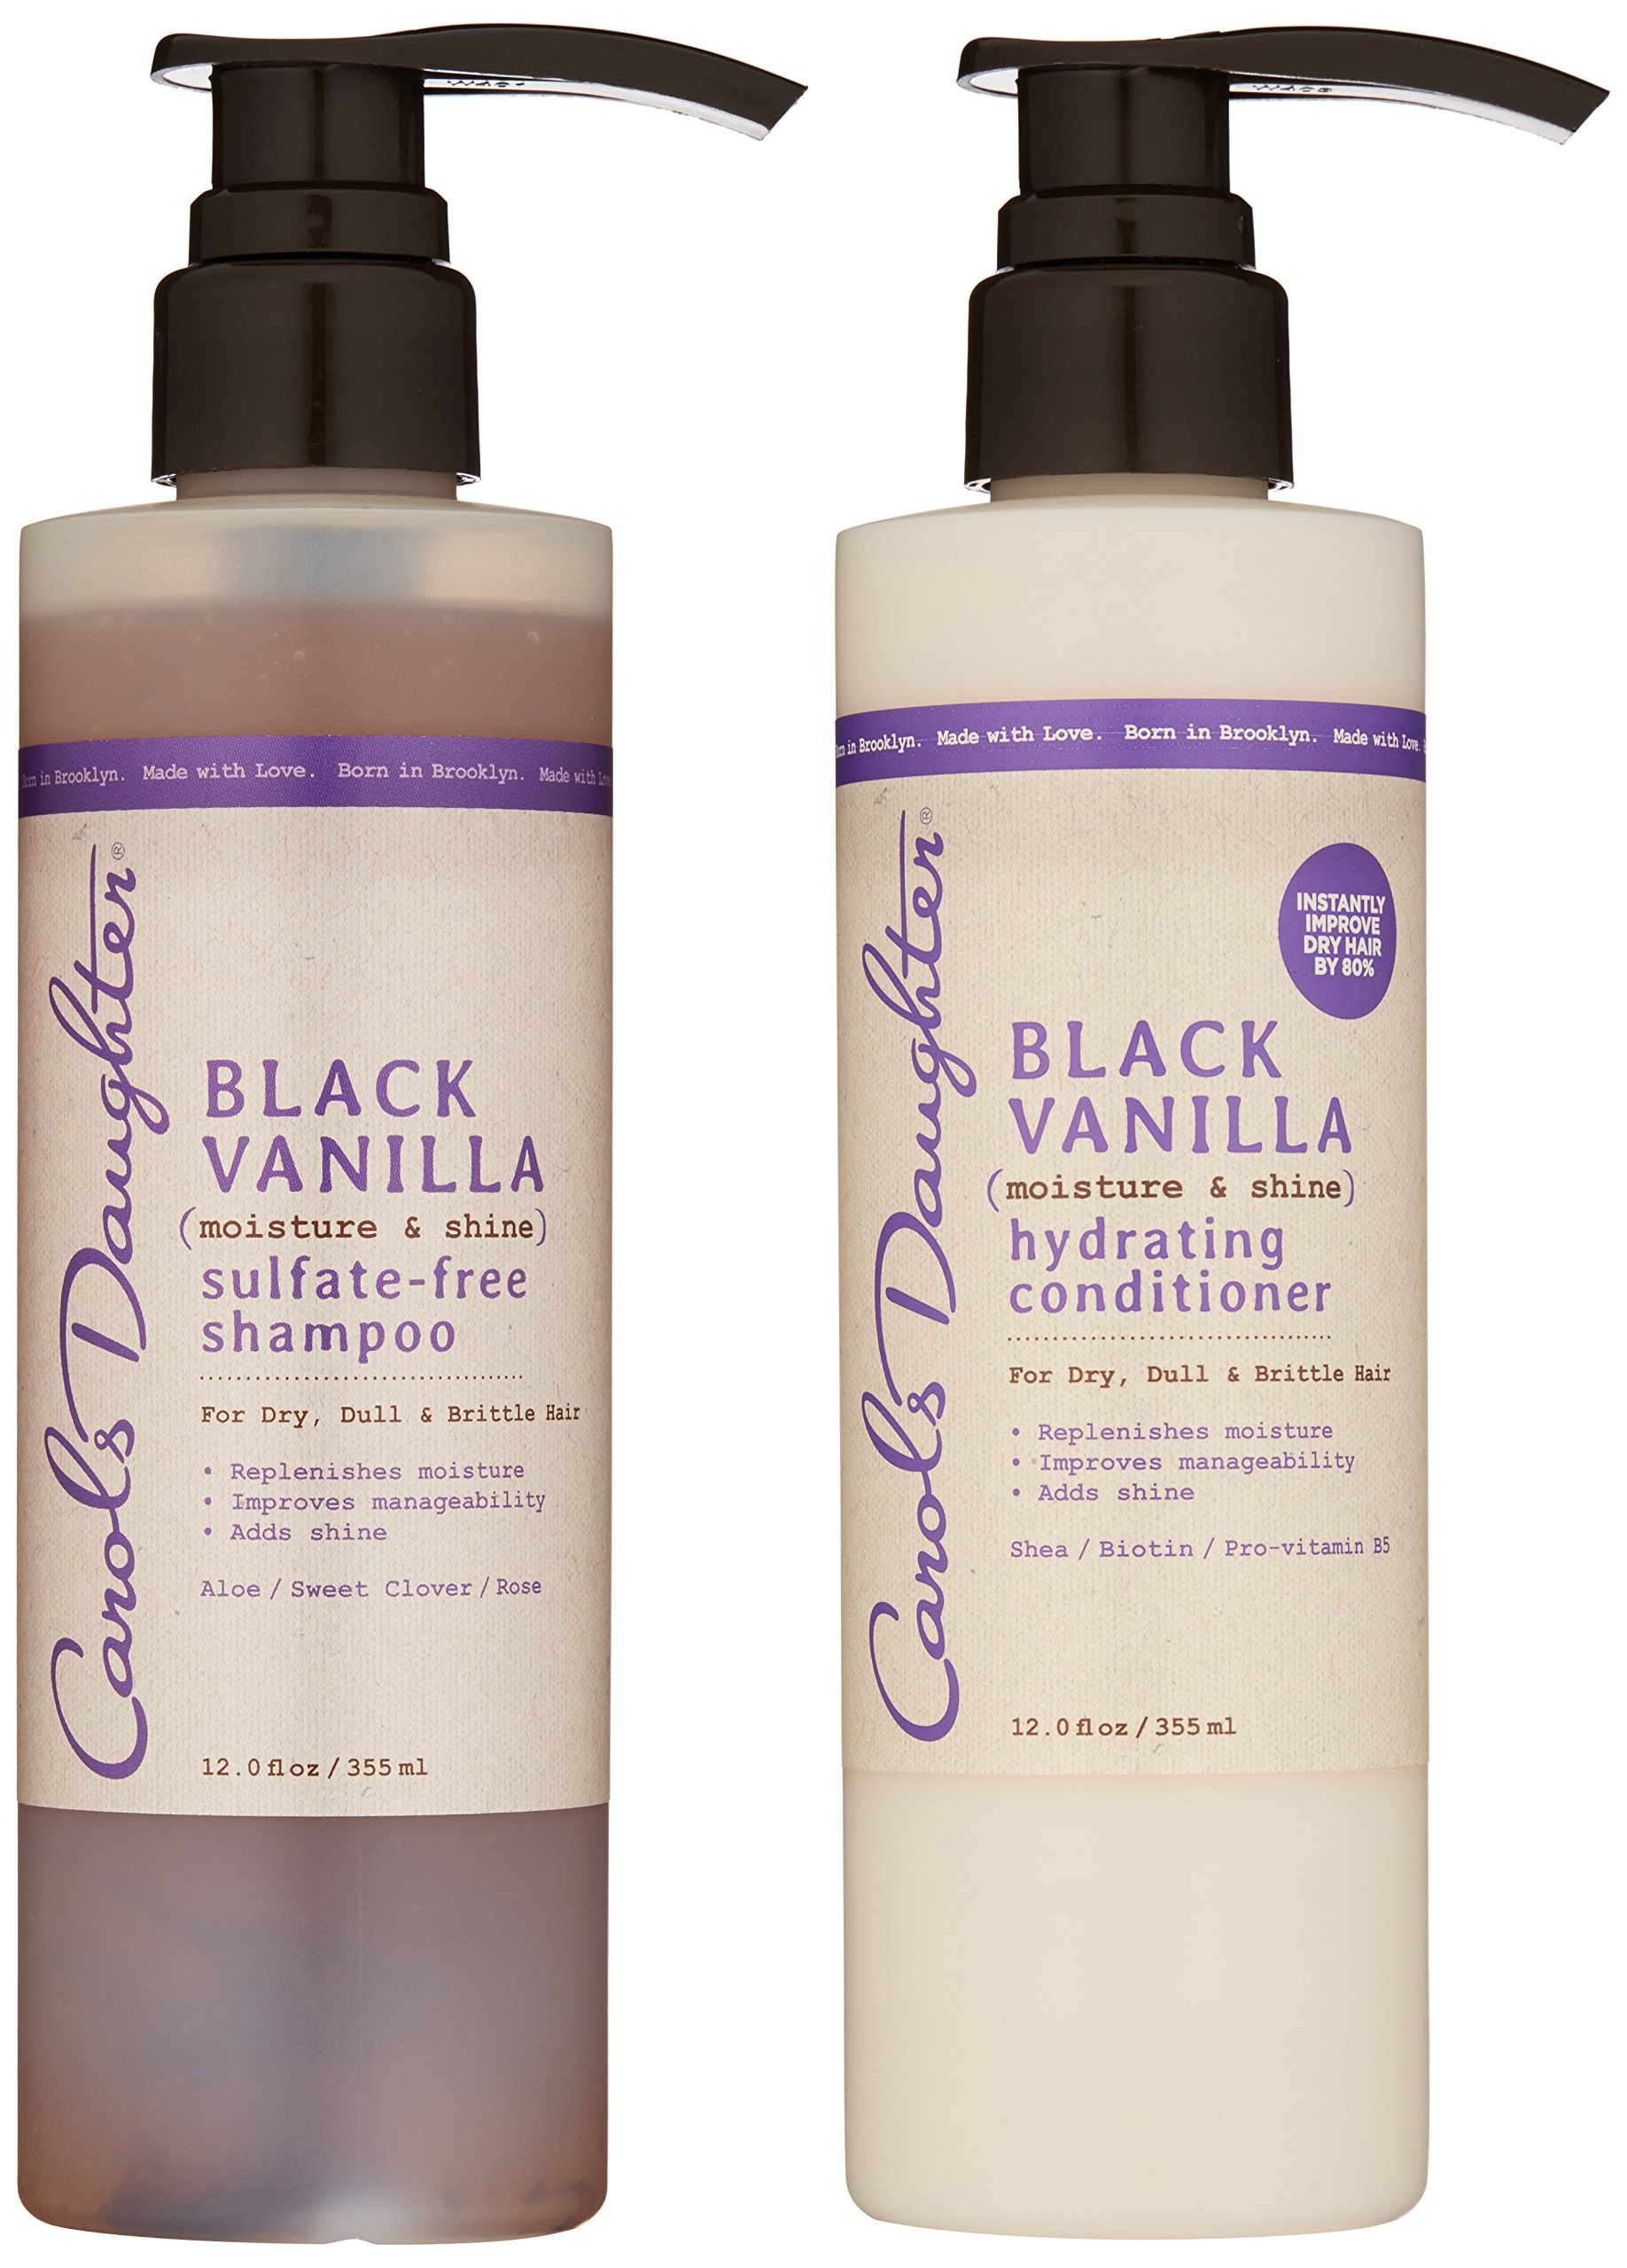 Carol's Daughter Black Vanilla Hair Care Gift Set for Dry/Dull & Brittle Hair